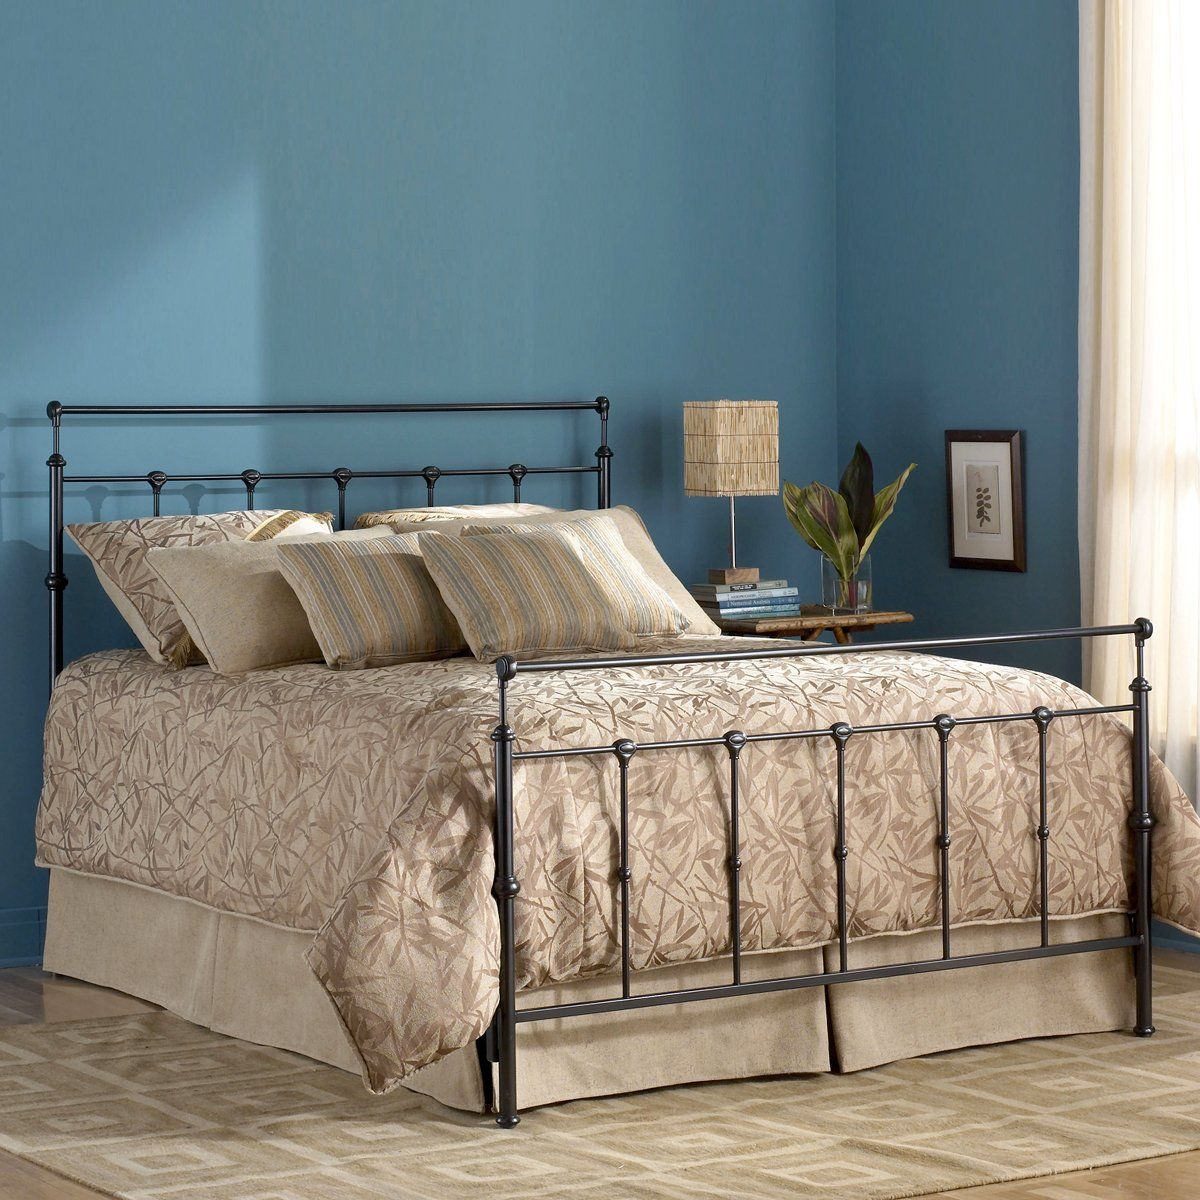 155 for headboard Shop Fashion Bed Group B4215 Winslow